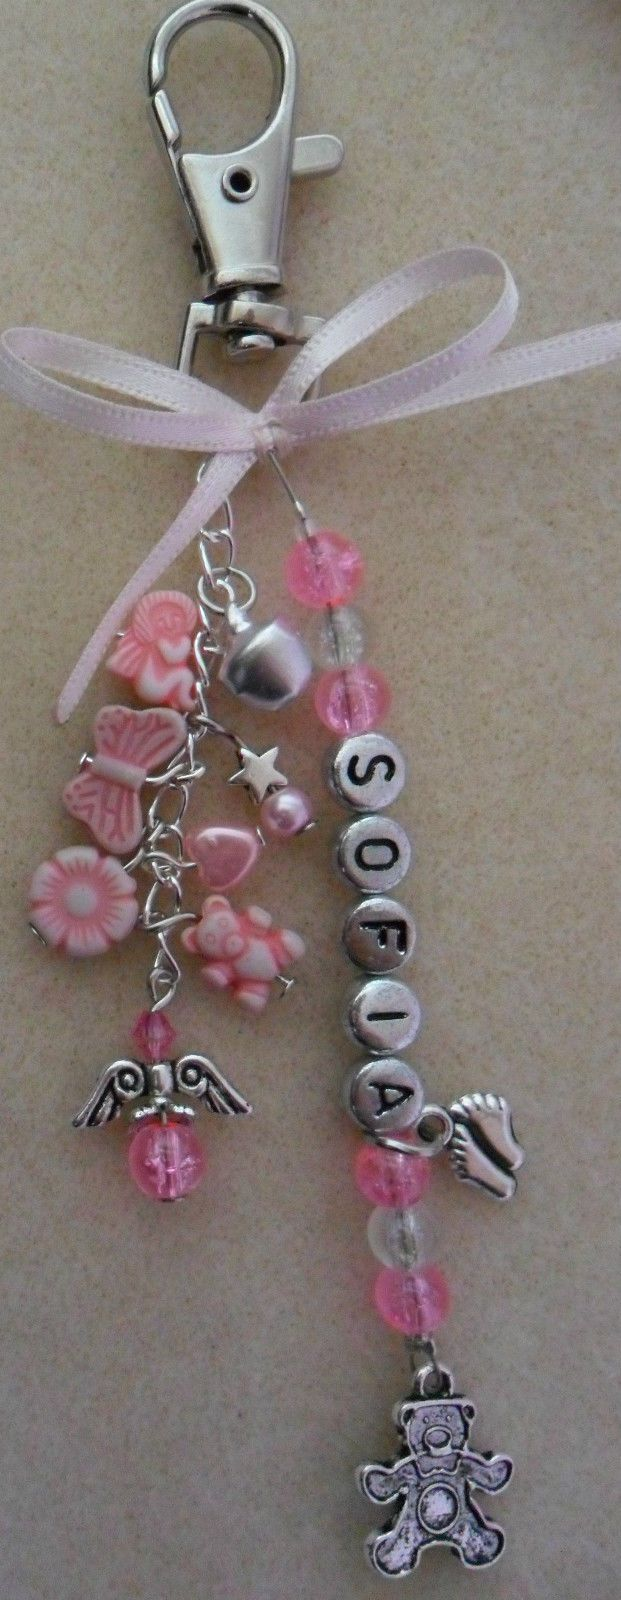 Details about Personalised Baby Changing Bag Pram Charm